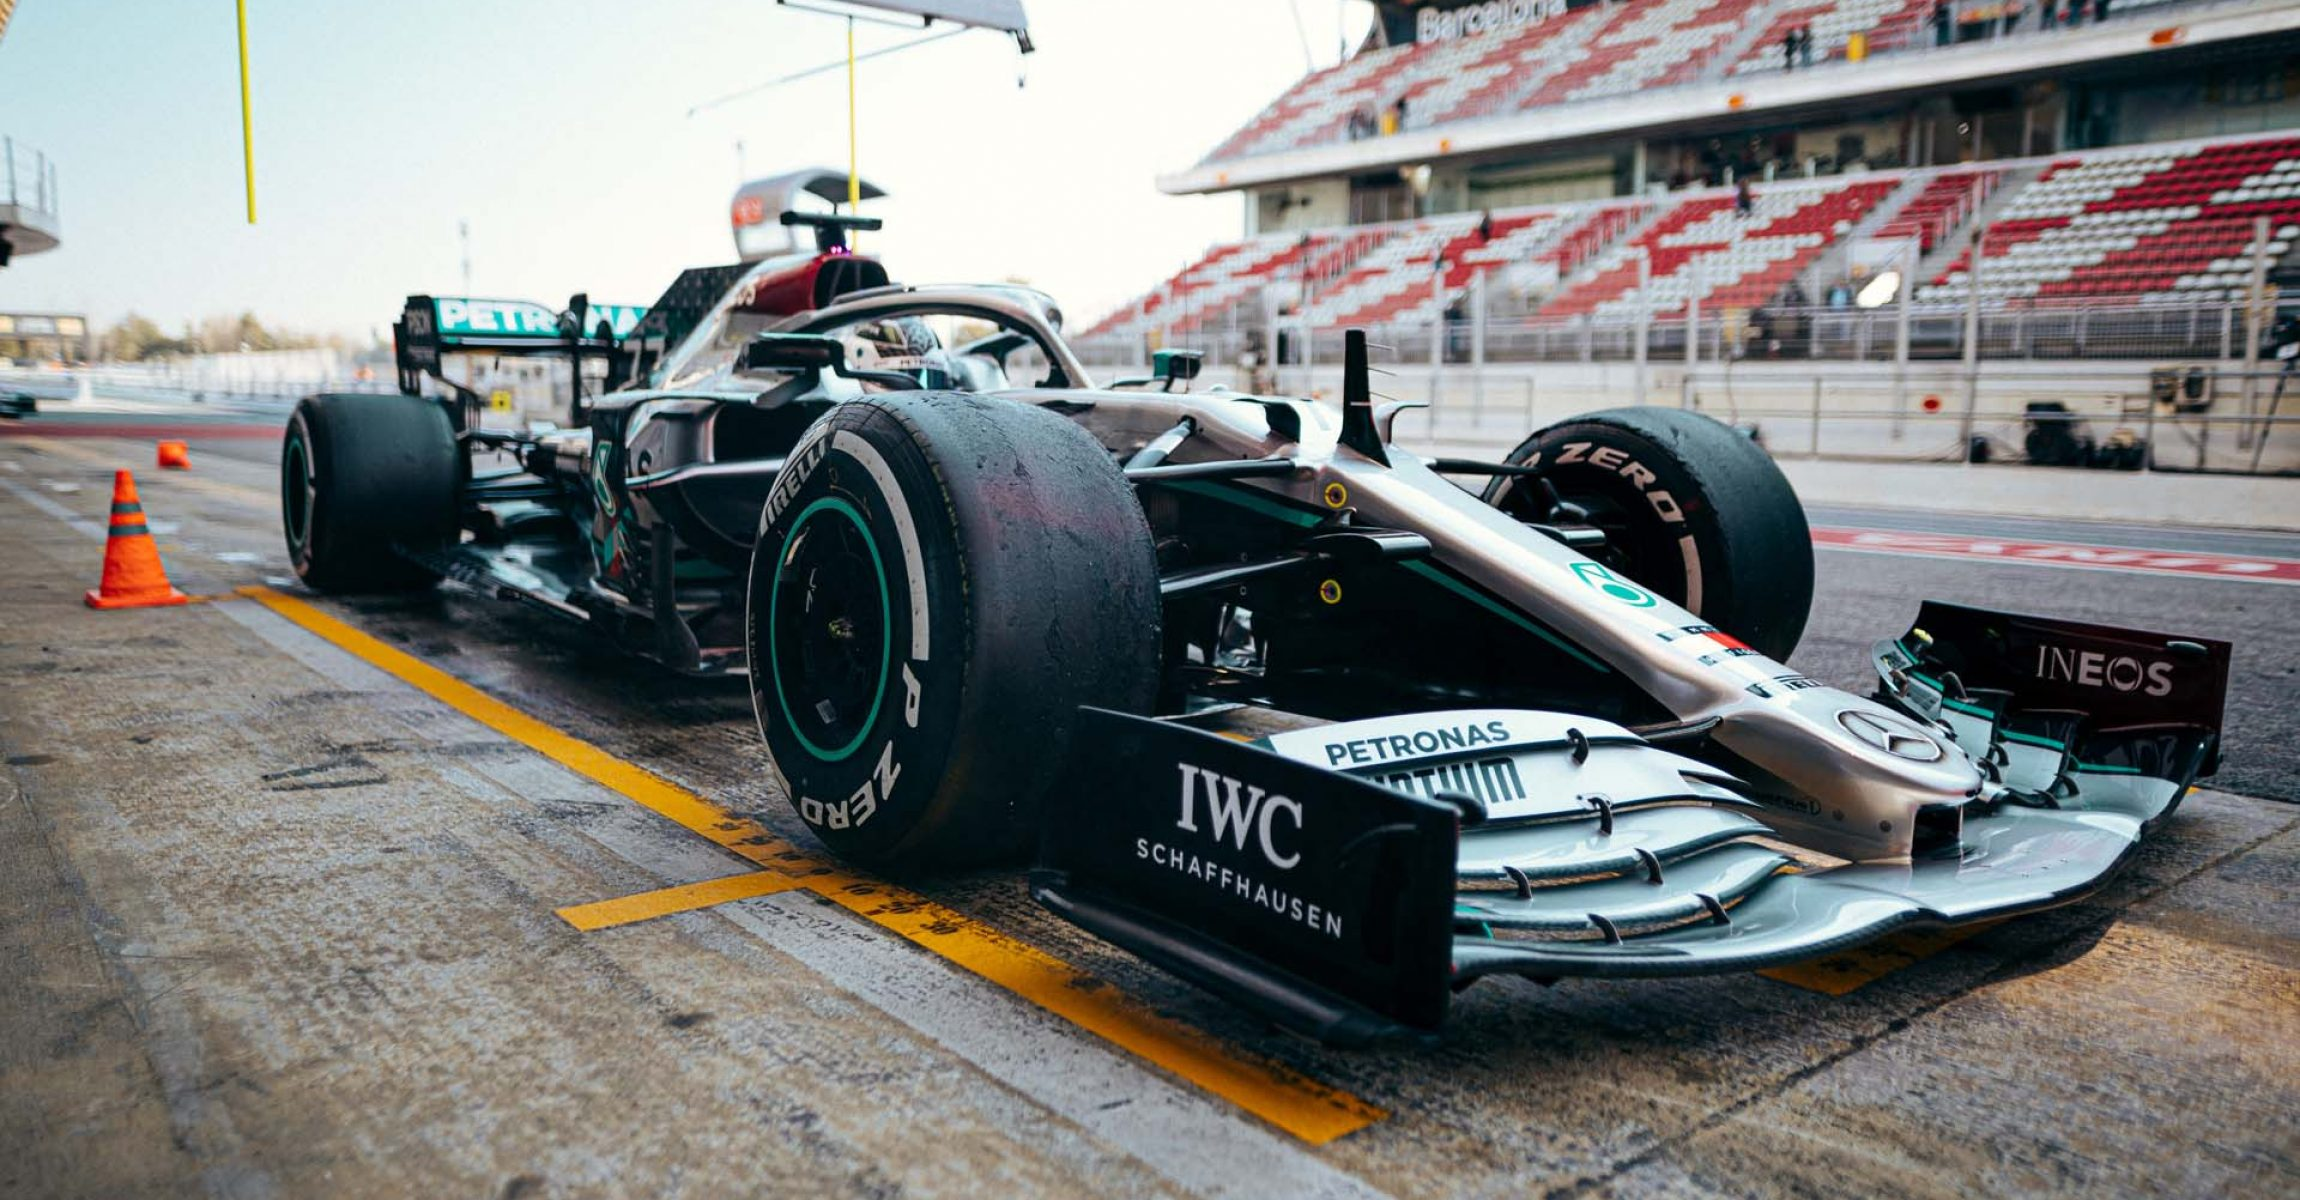 2020 Barcelona Pre-Season Test 1, Day 3 - Sebastian Kawka Valtteri Bottas Mercedes